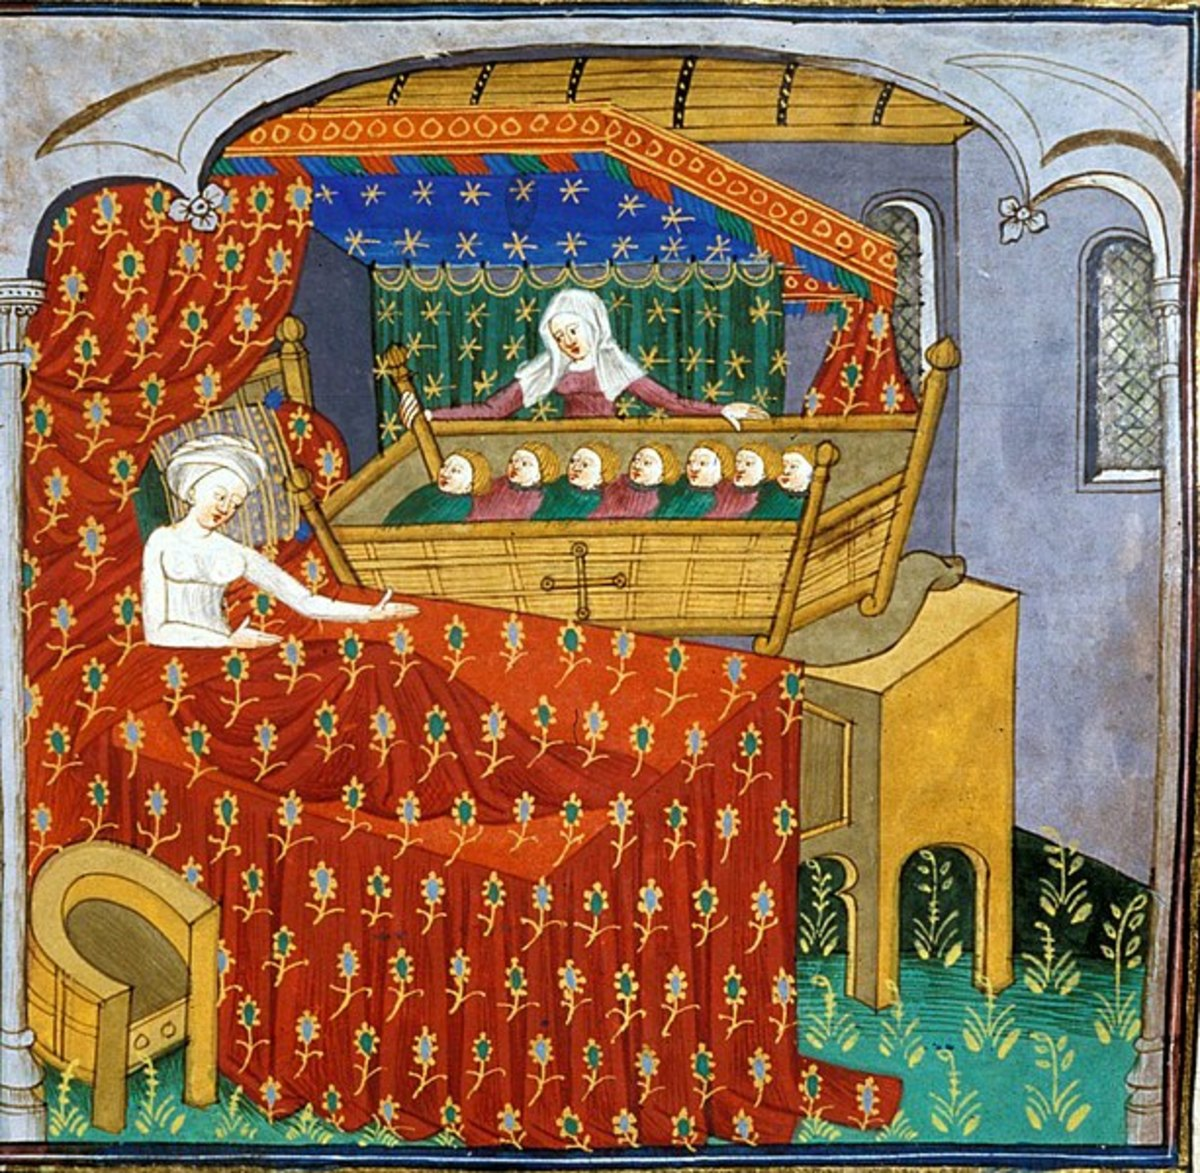 Medieval mother in bed with seven babies in a cradle